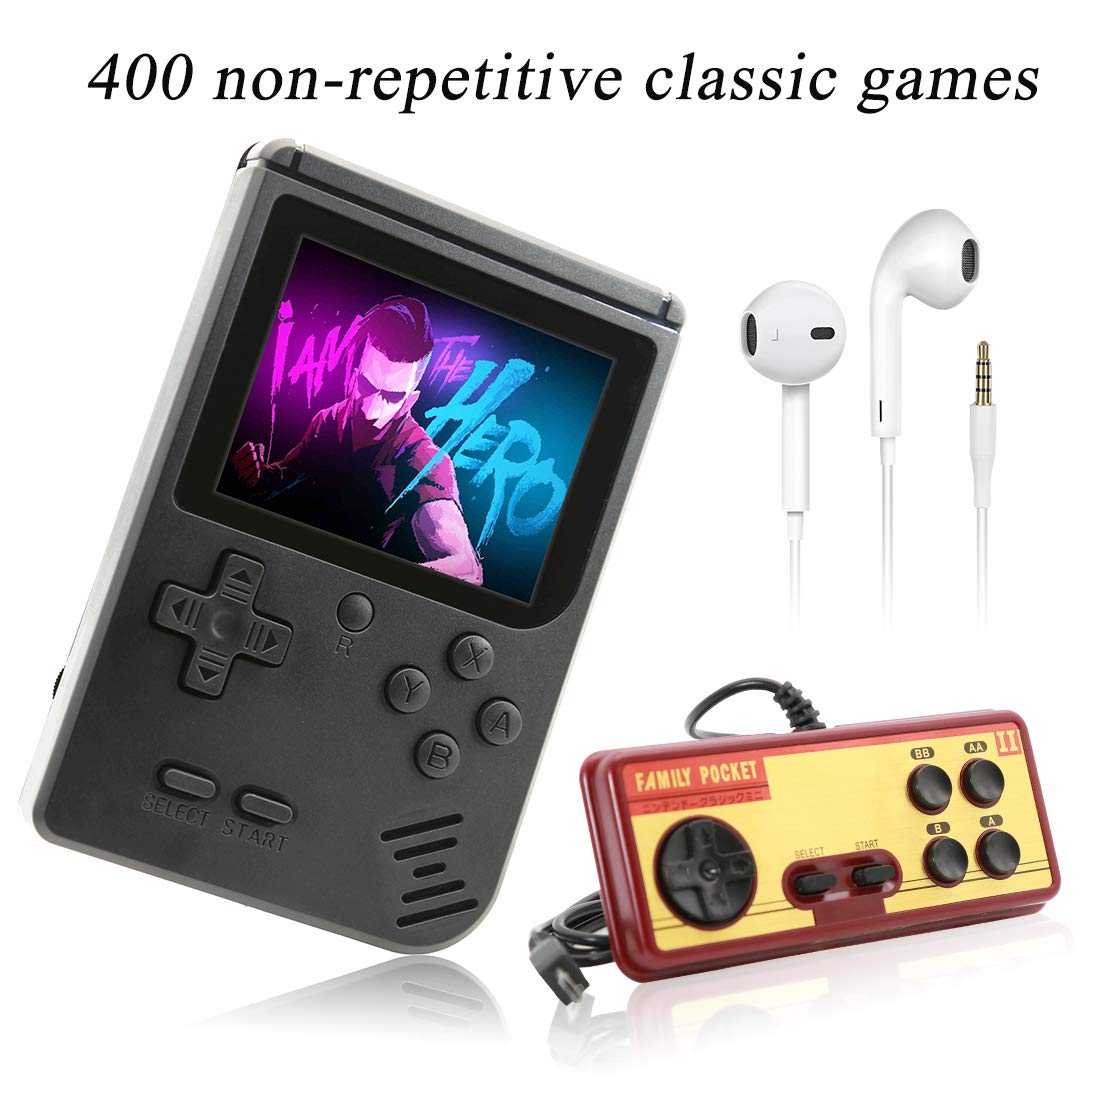 AKTOUGST Handheld Game Console, Retro Game Console 400 Classic Game FC System Video Portable Mini Extra Joystick Controller Support TV 2 Player,Gift for Children Adult, (Black) by AKTOUGST (Image #1)